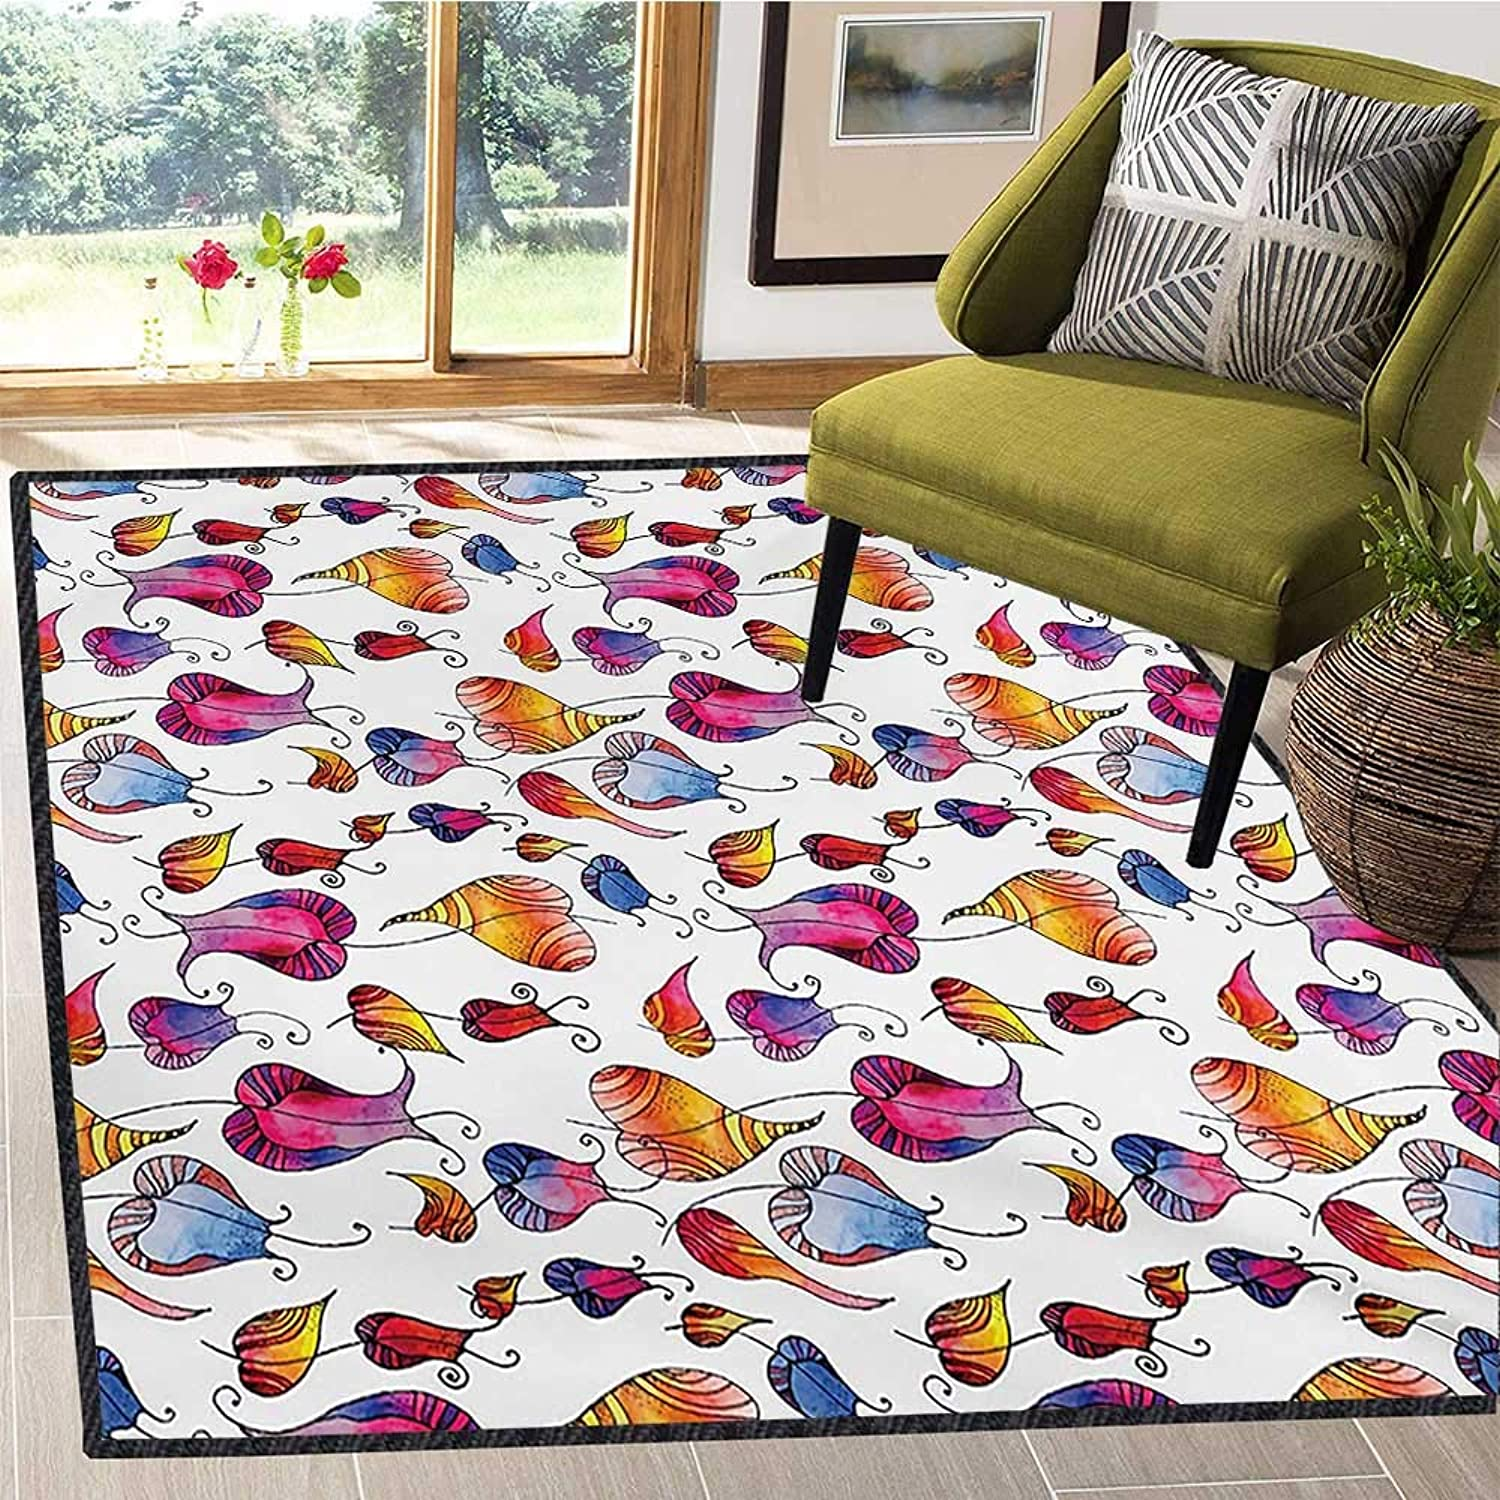 colorful, Door Mats for Inside, colorful Watercolor Tulips with Doodle Drawing Style Blossoming Spring Flowers, Door Mats for Inside Non Slip Backing 4x6 Ft Multicolor